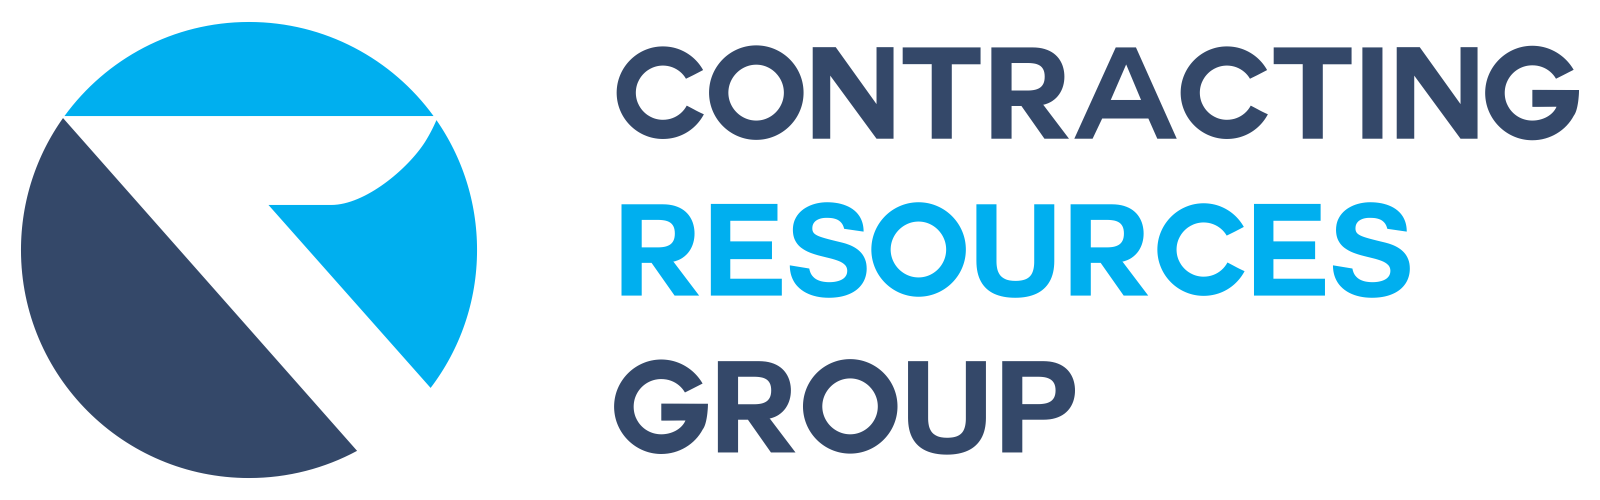 Contracting Resources Group, Inc.